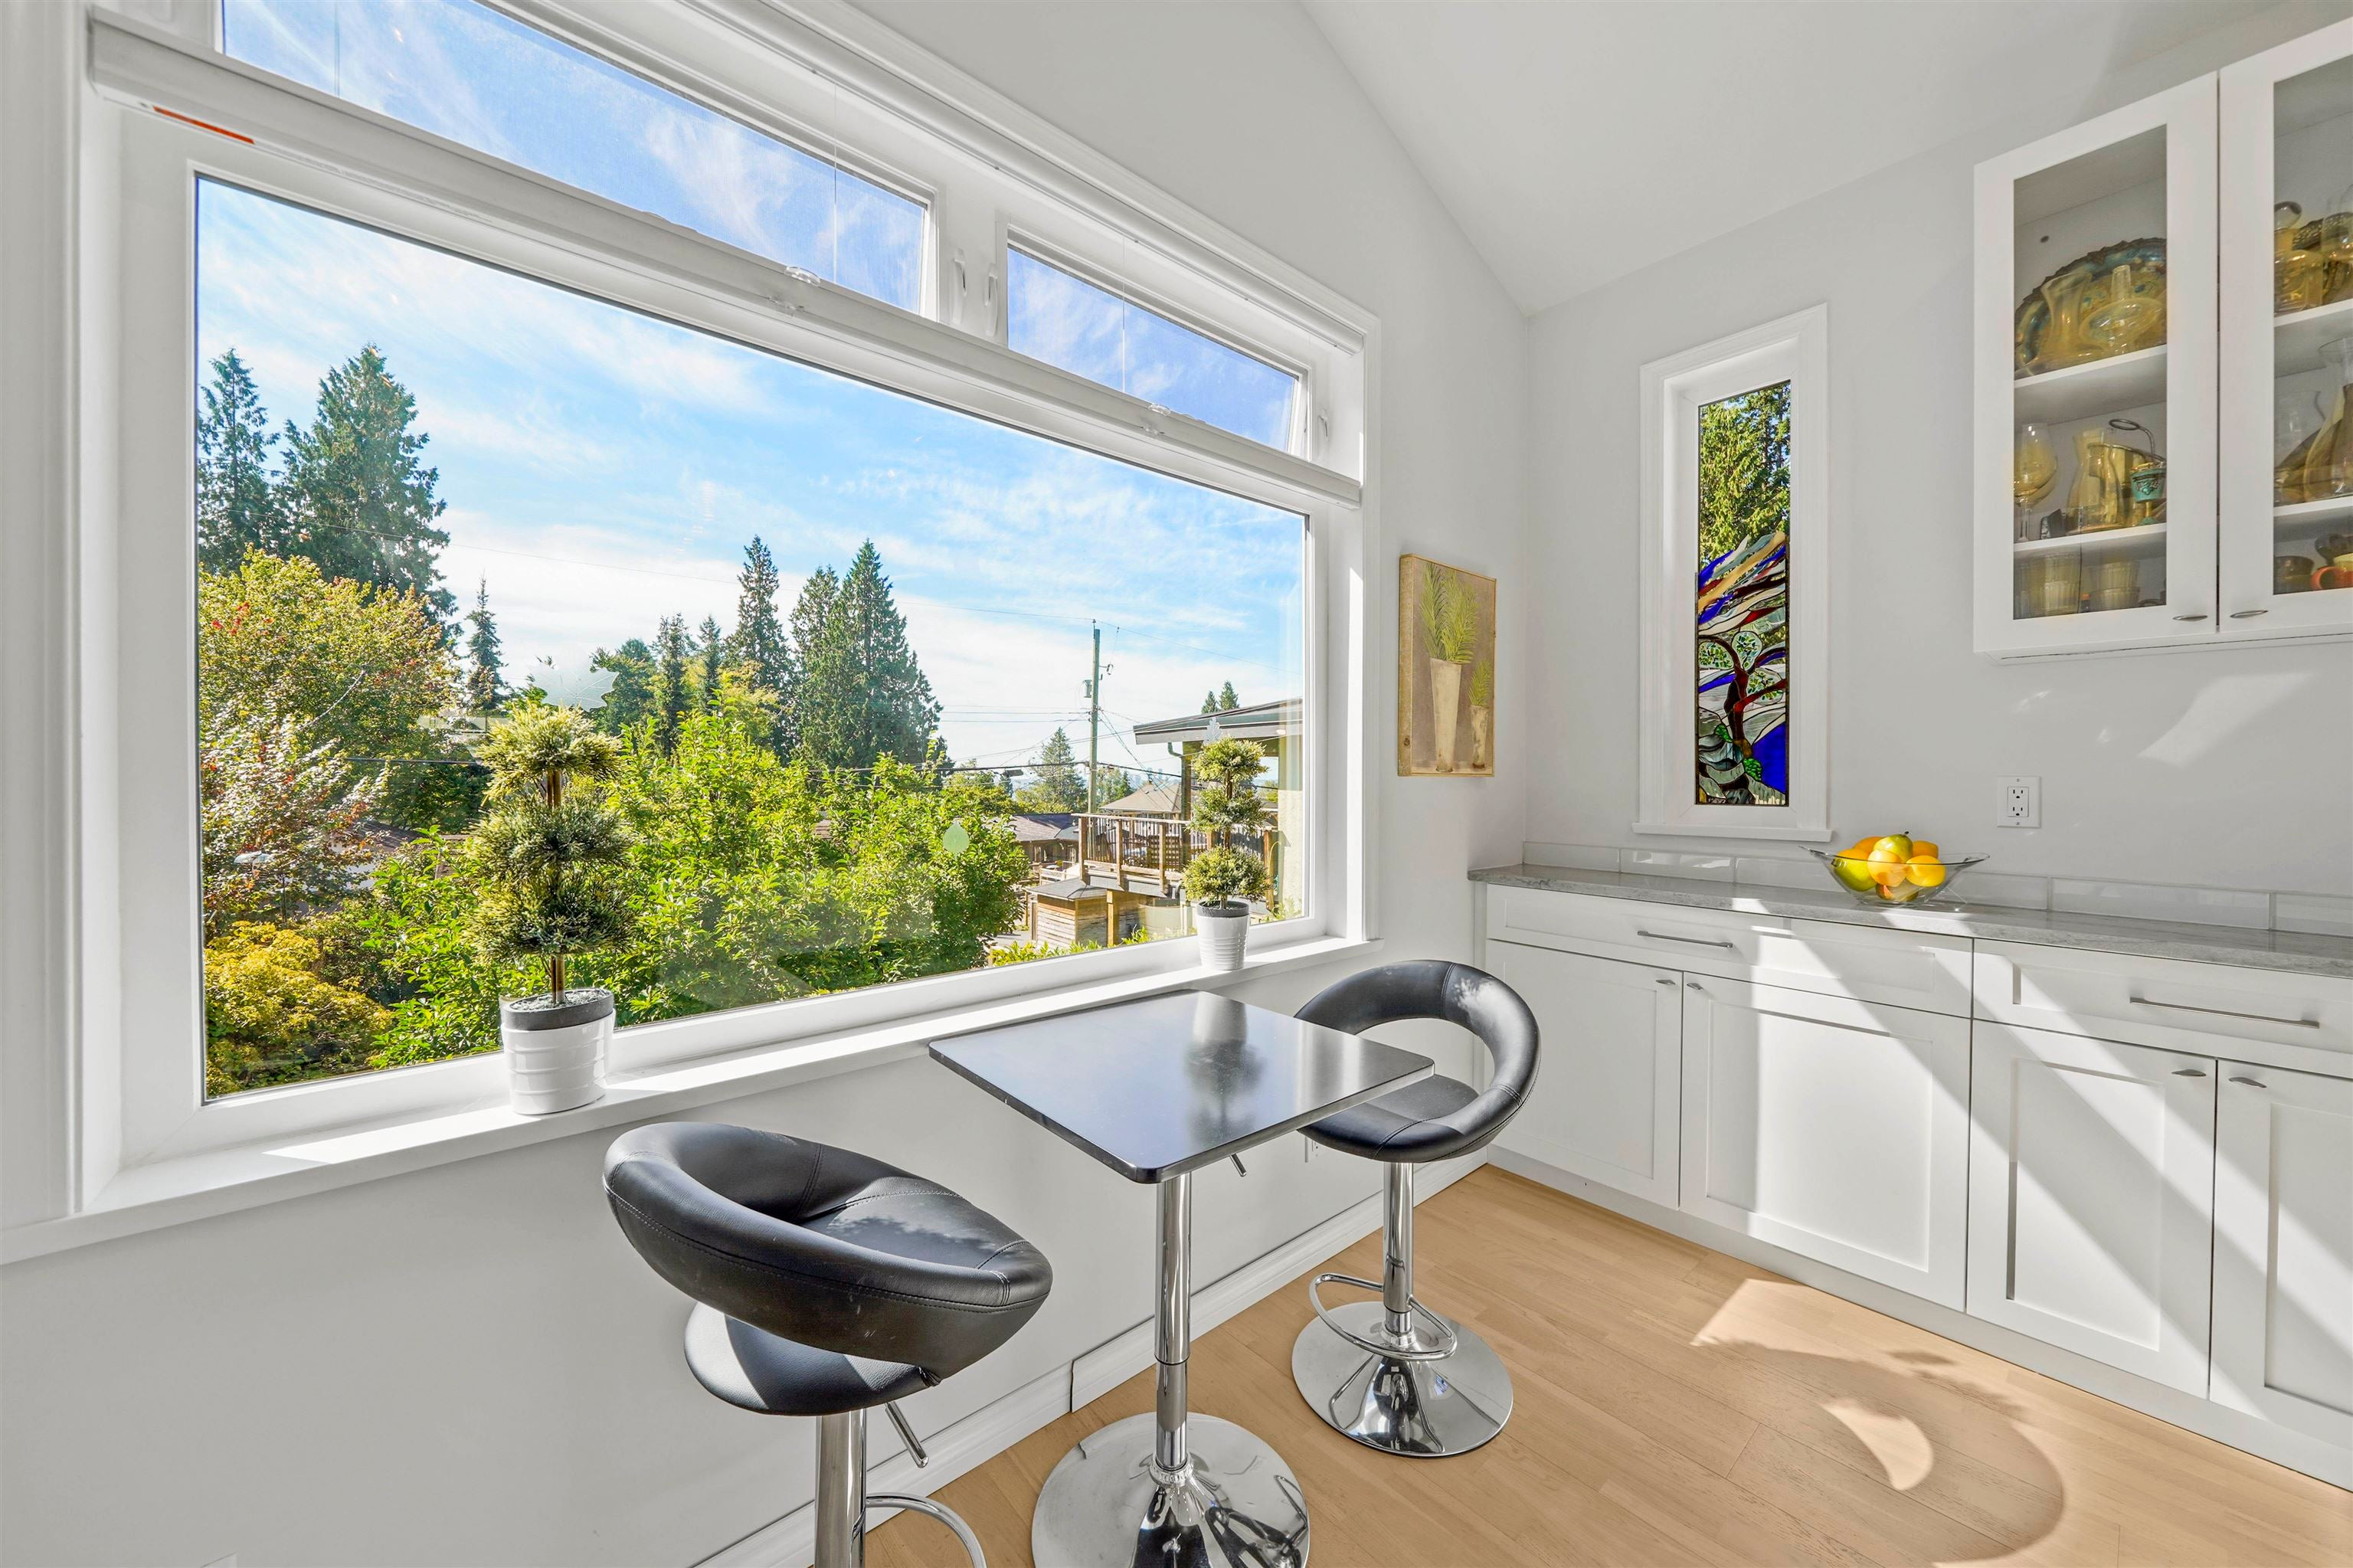 259 E 27TH STREET - Upper Lonsdale House/Single Family for sale, 2 Bedrooms (R2619117) - #1